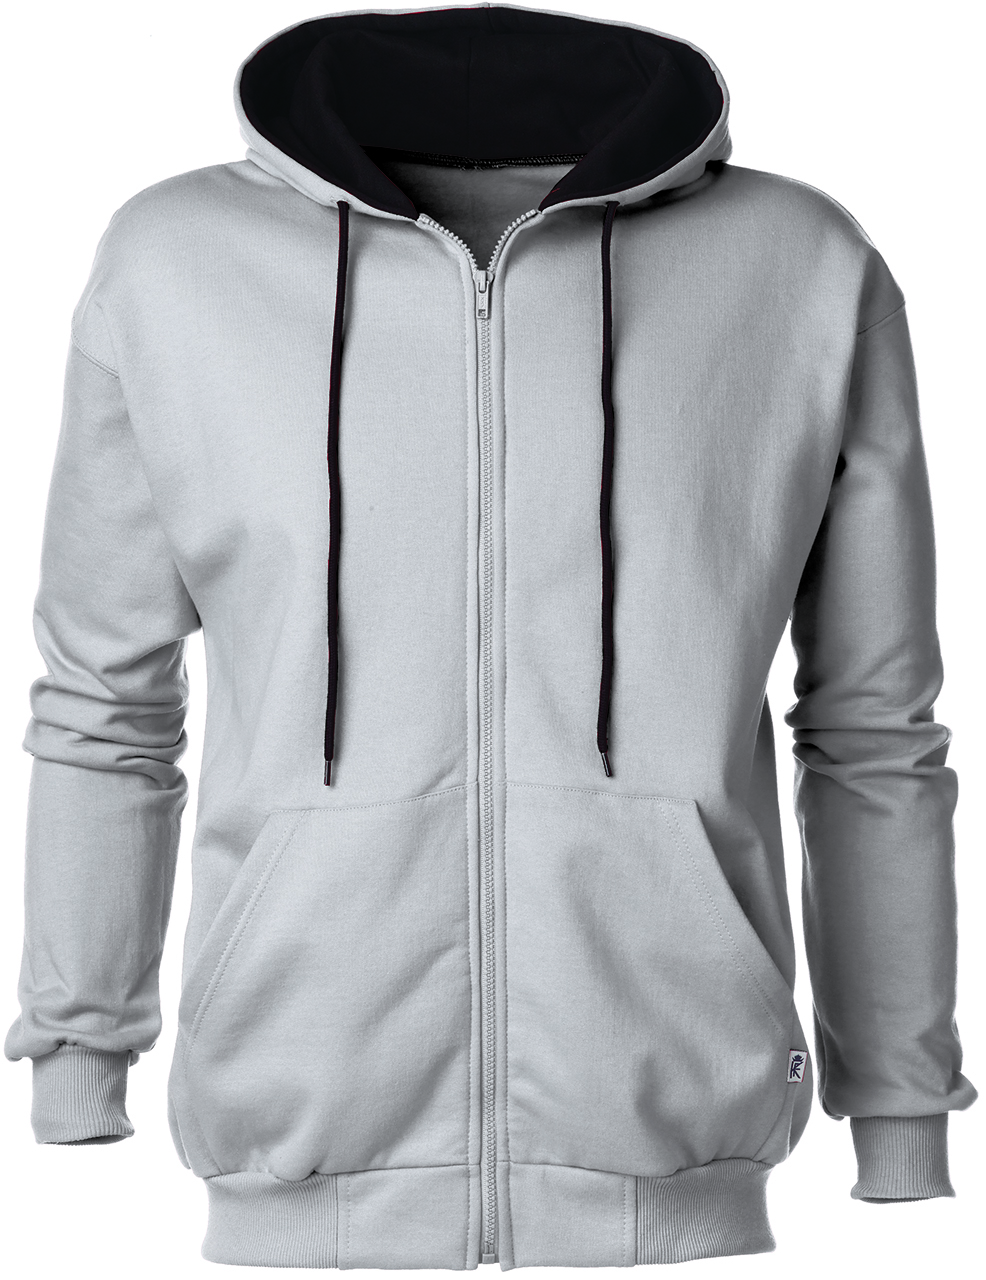 Picture of King Fashion Full Zip Sweatshirt